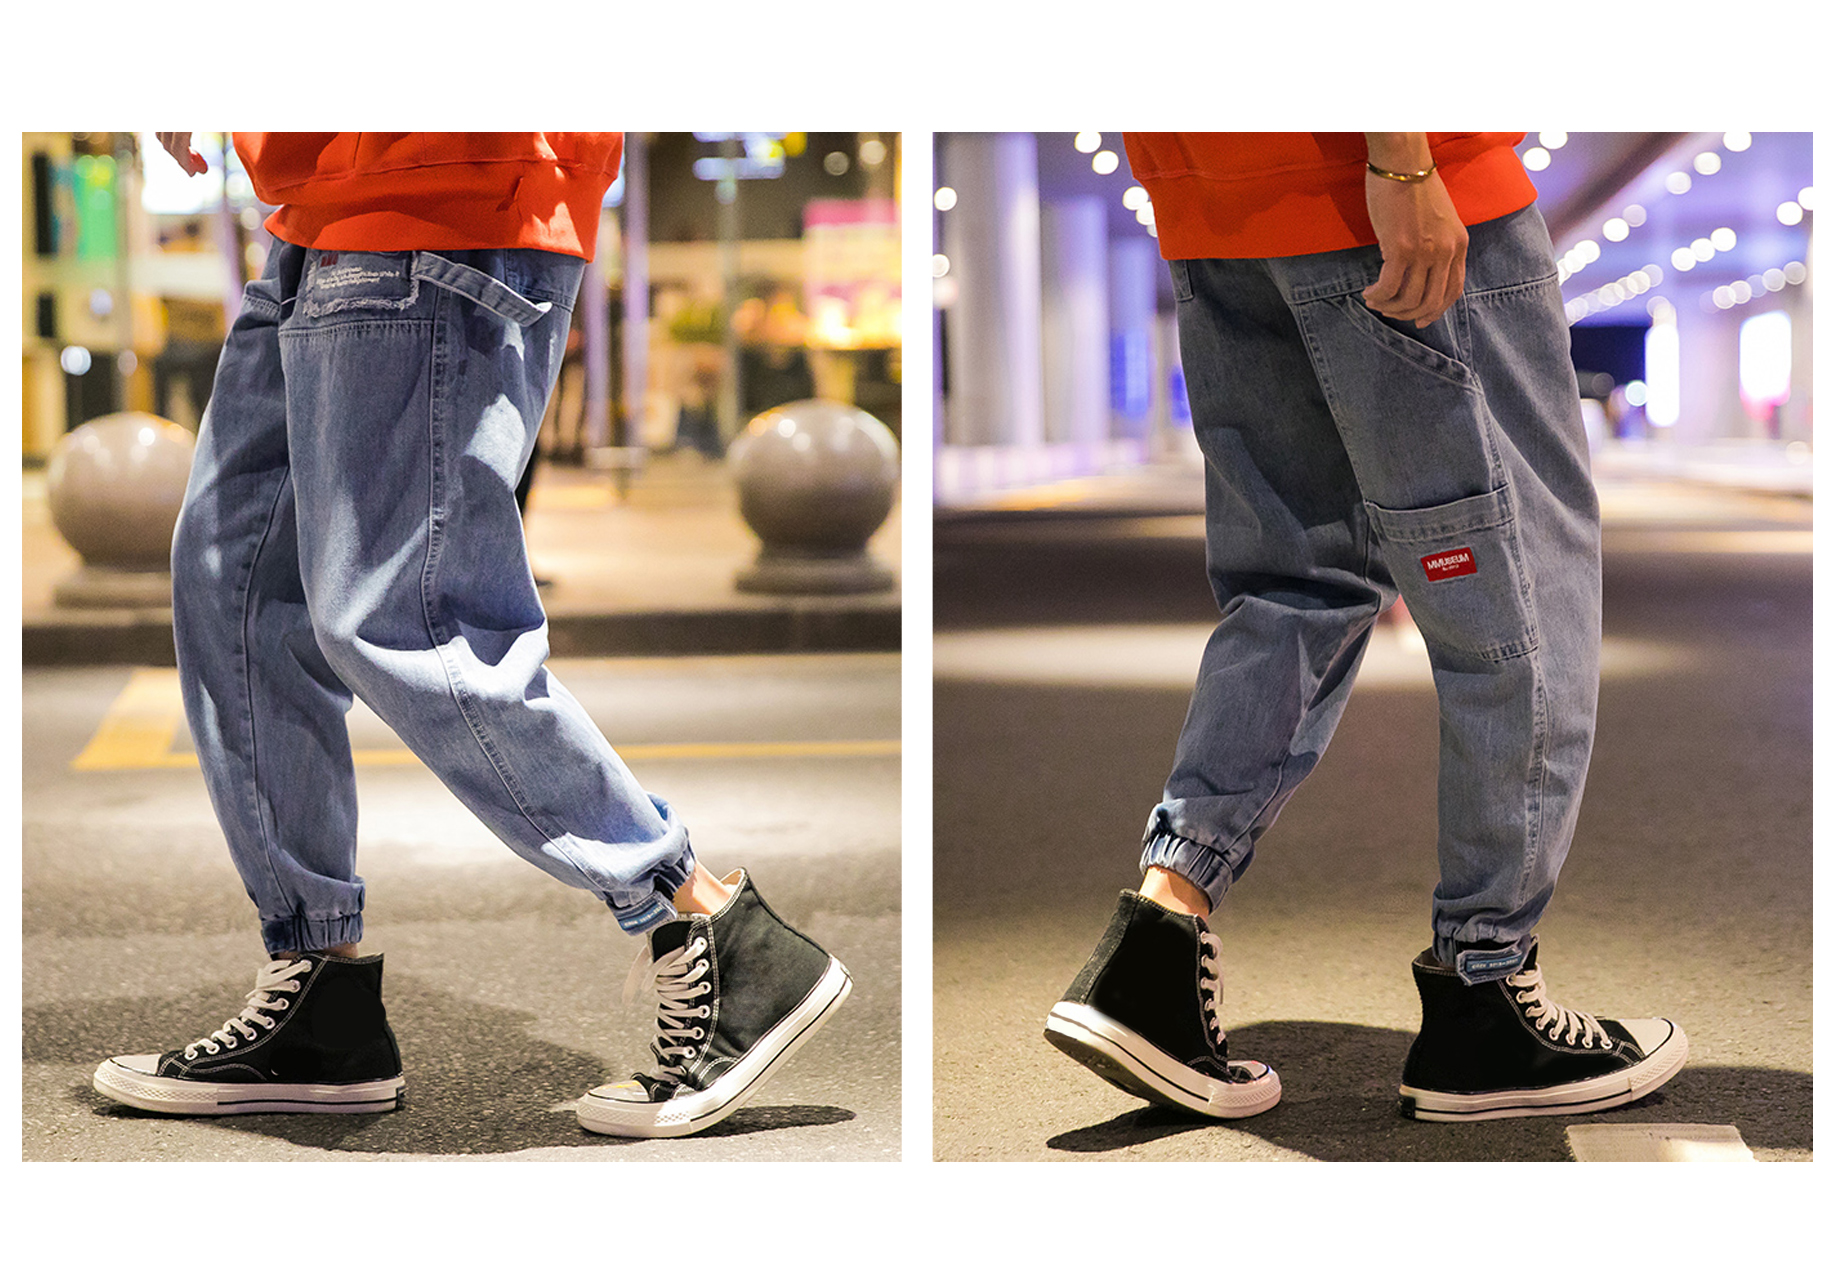 Men's Jeans Denim Pants Retro Washed Trousers Classic Casual Work Wear Street Fashion Trend Hip Hop For Adolescents Young Boys